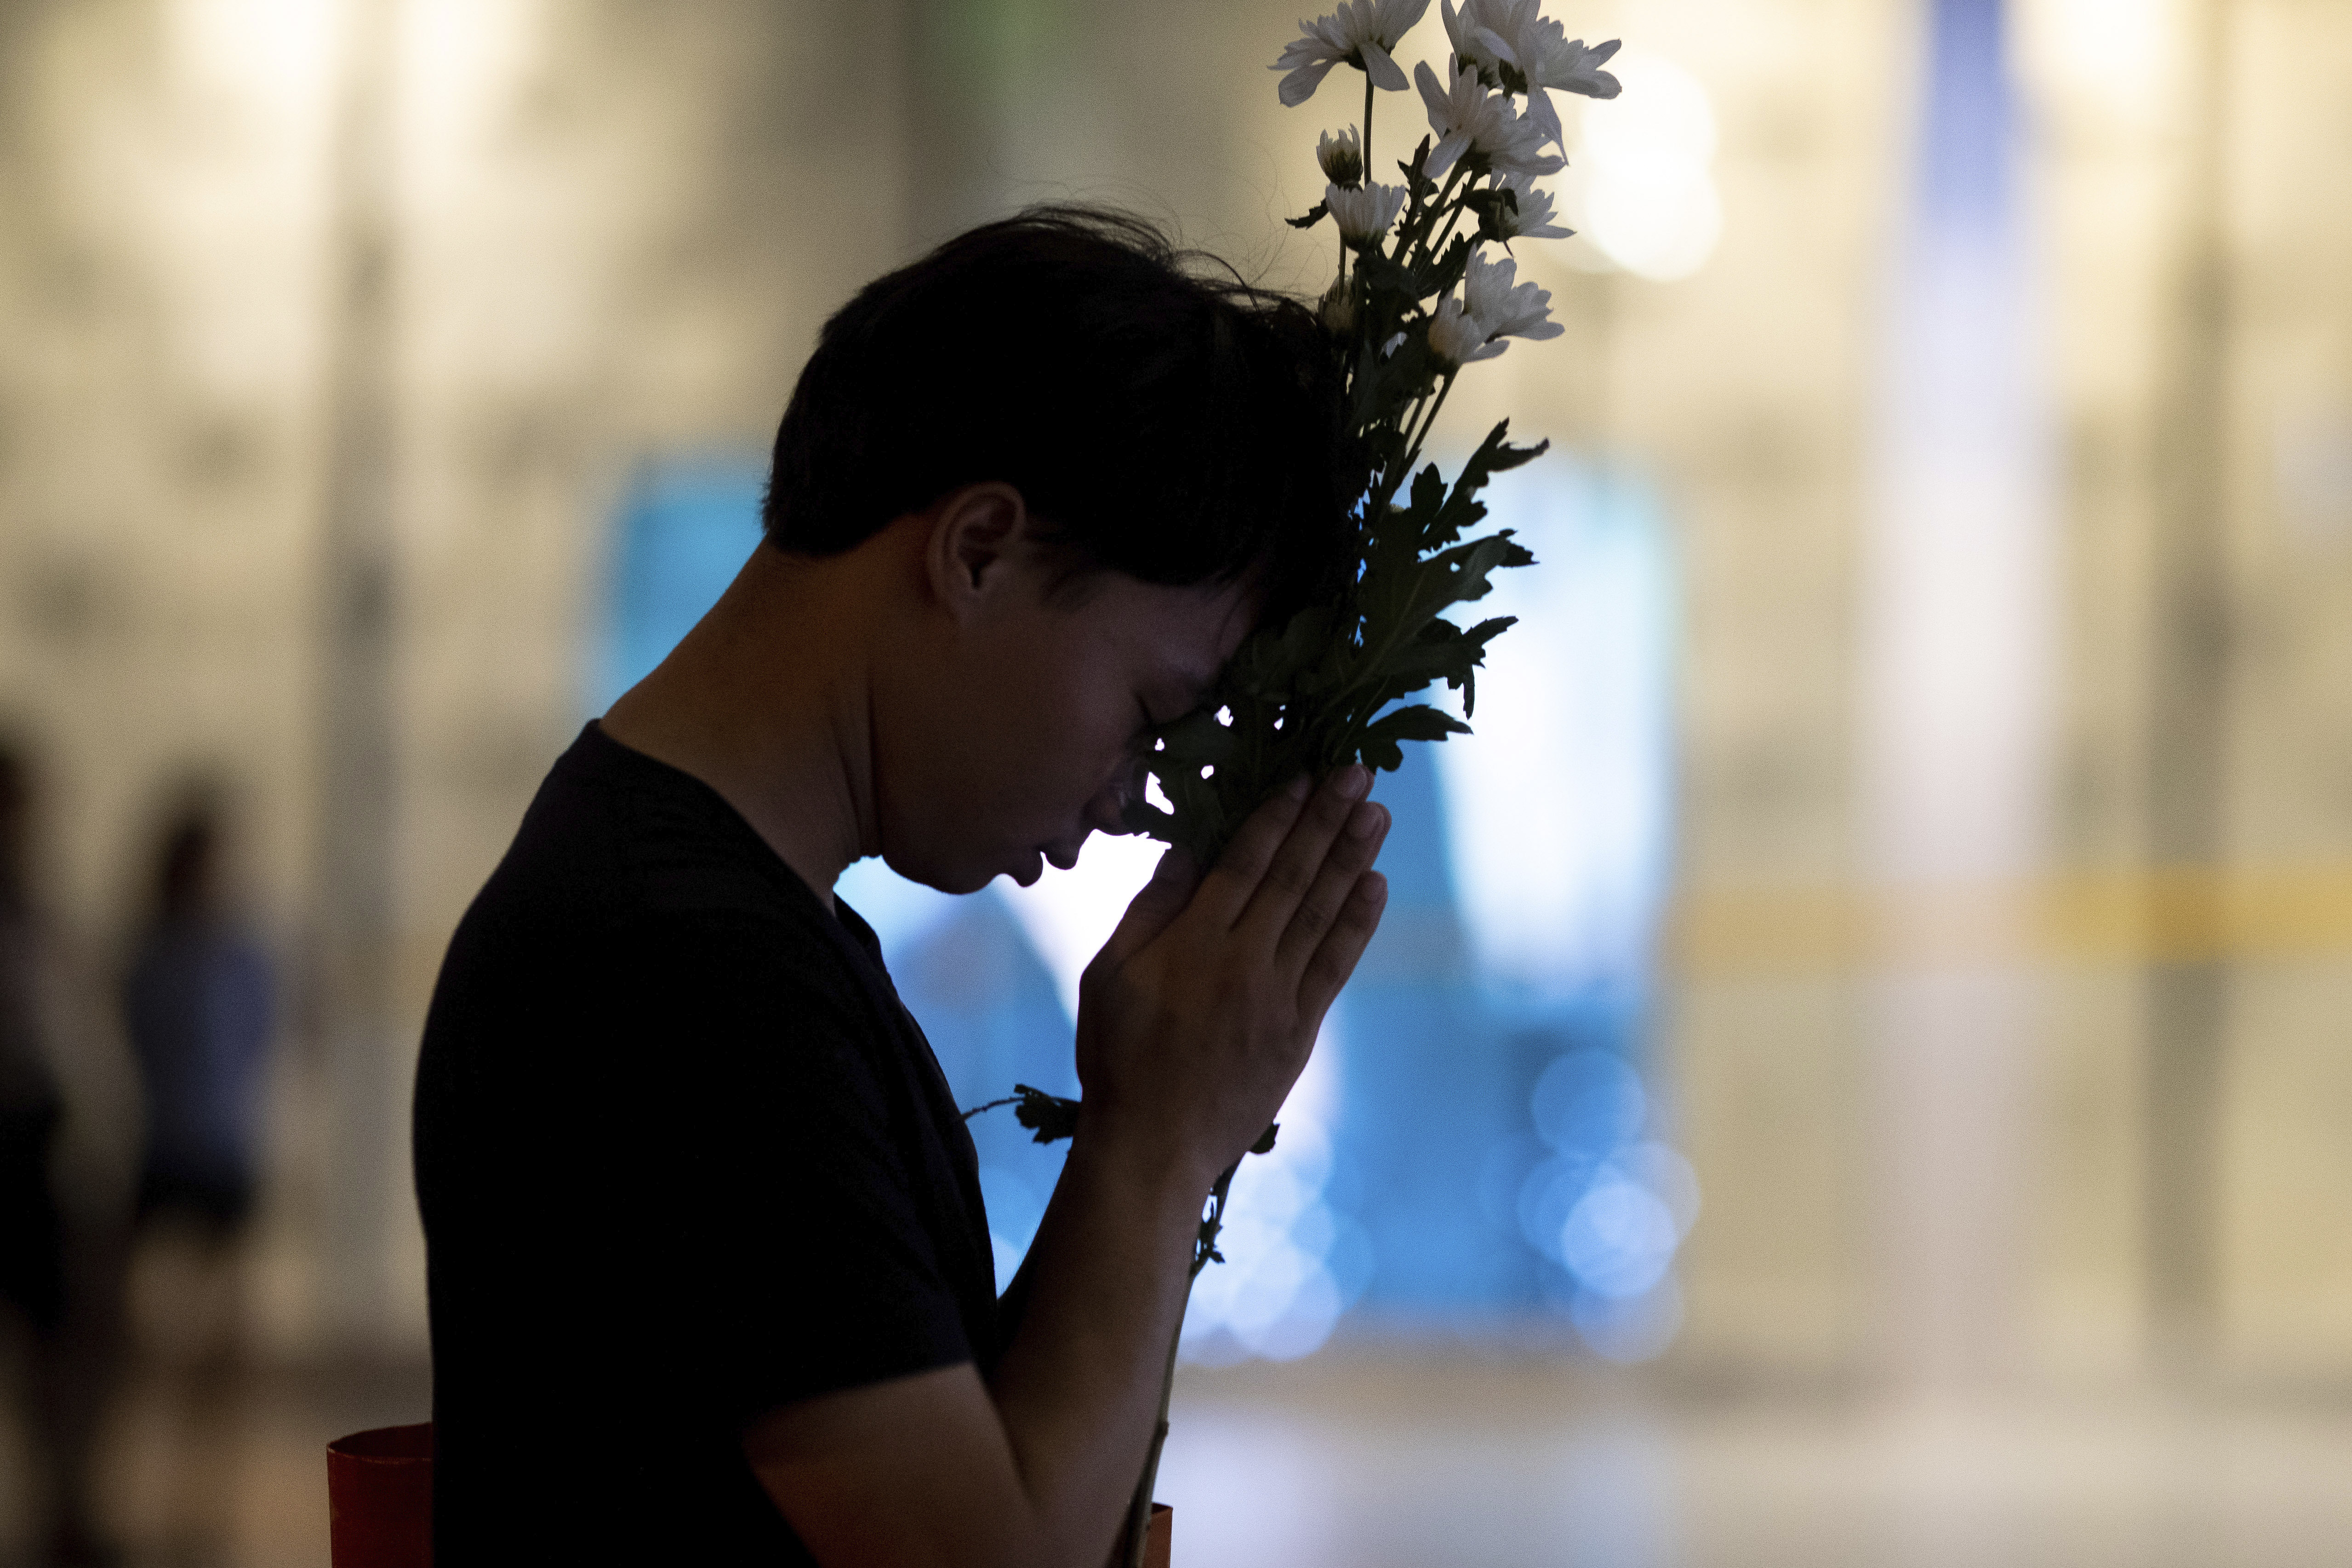 People hold his bouquet during a memorial service at Terminal 21 Korat mall in Nakhon Ratchasima, Thailand on Sunday